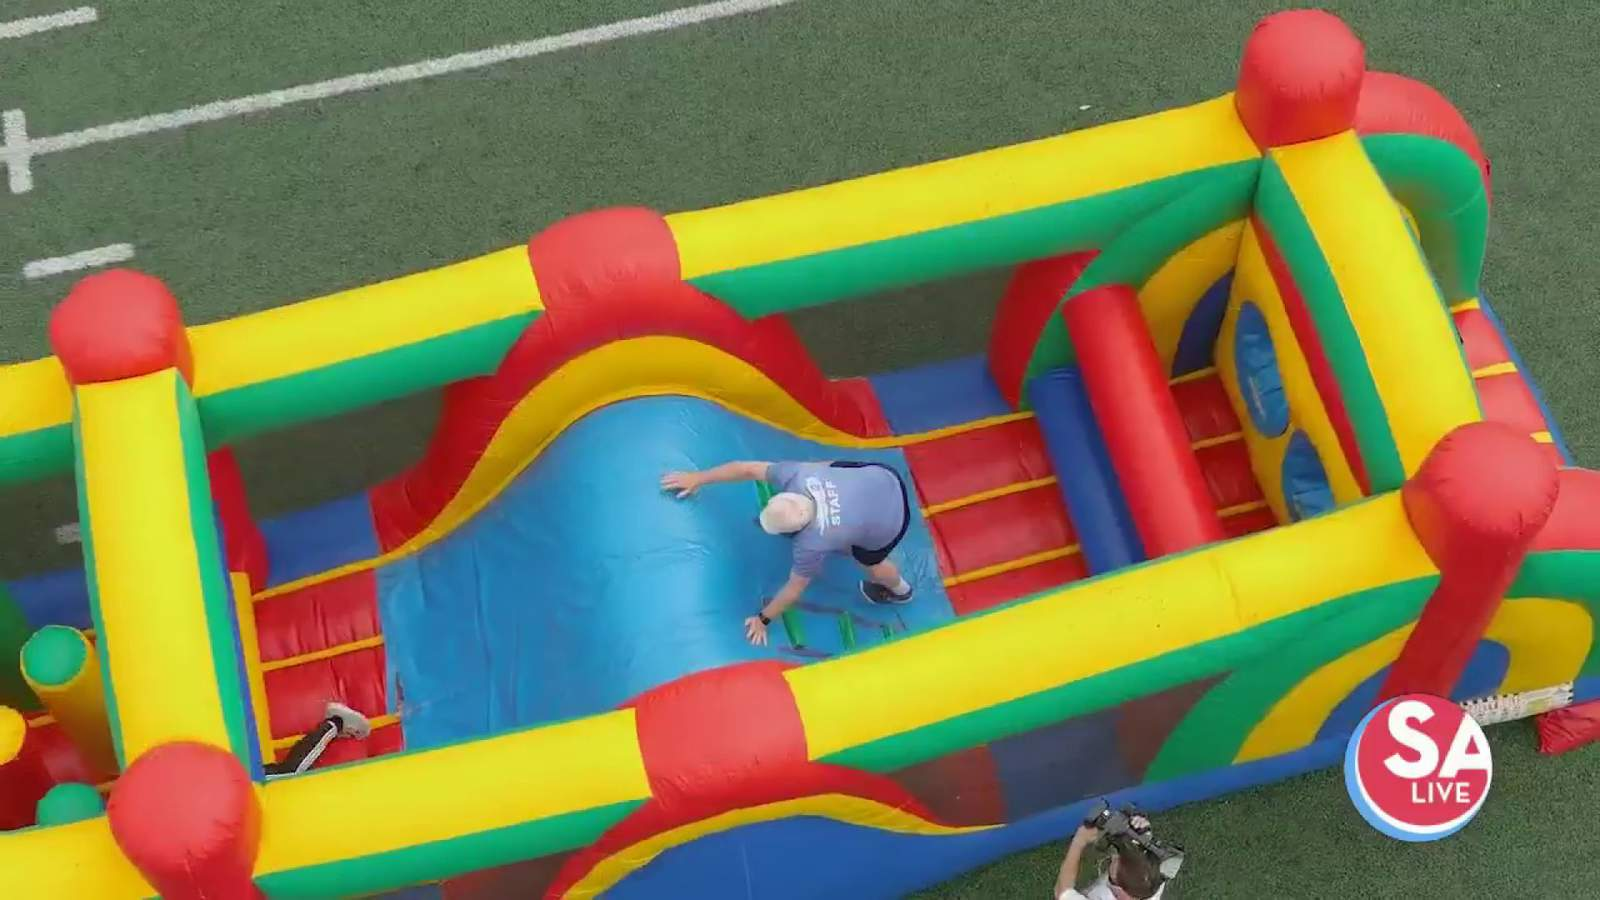 Fiona + Mike take on football-field-sized inflatable obstacle course